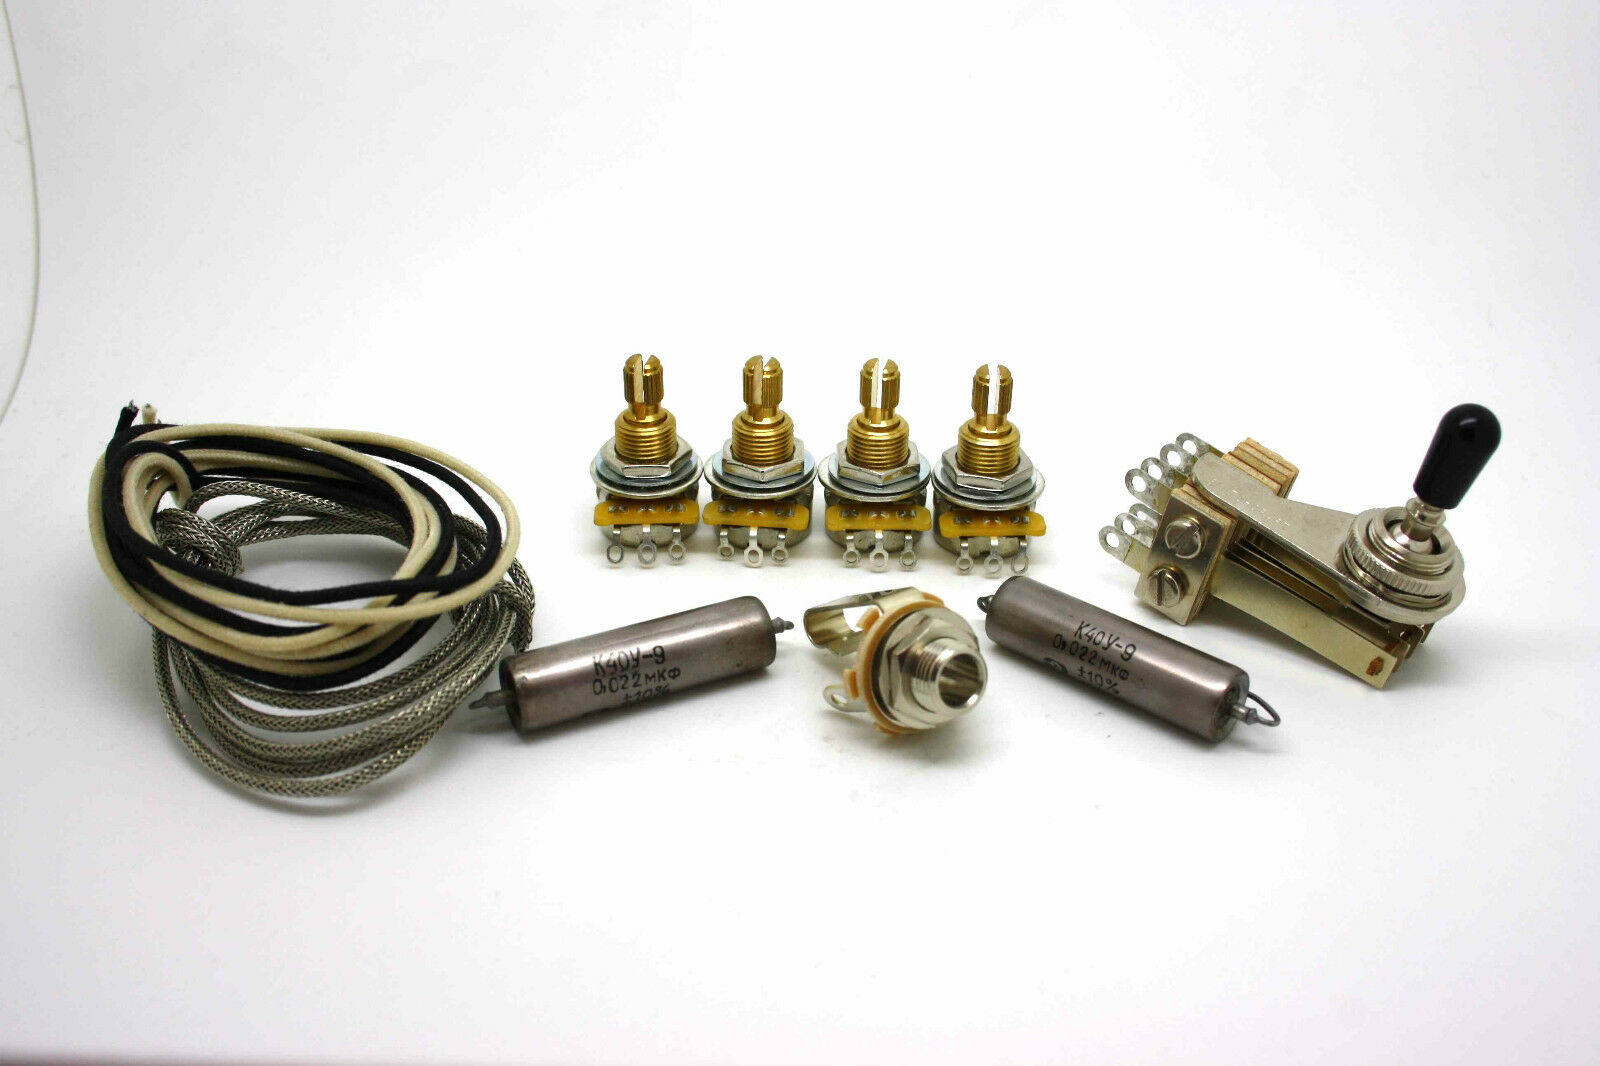 DELUXE VINTAGE WIRING KIT GIBSON EDS-1275 DOUBLE NECK WITH K40Y-9 CAPACITORS